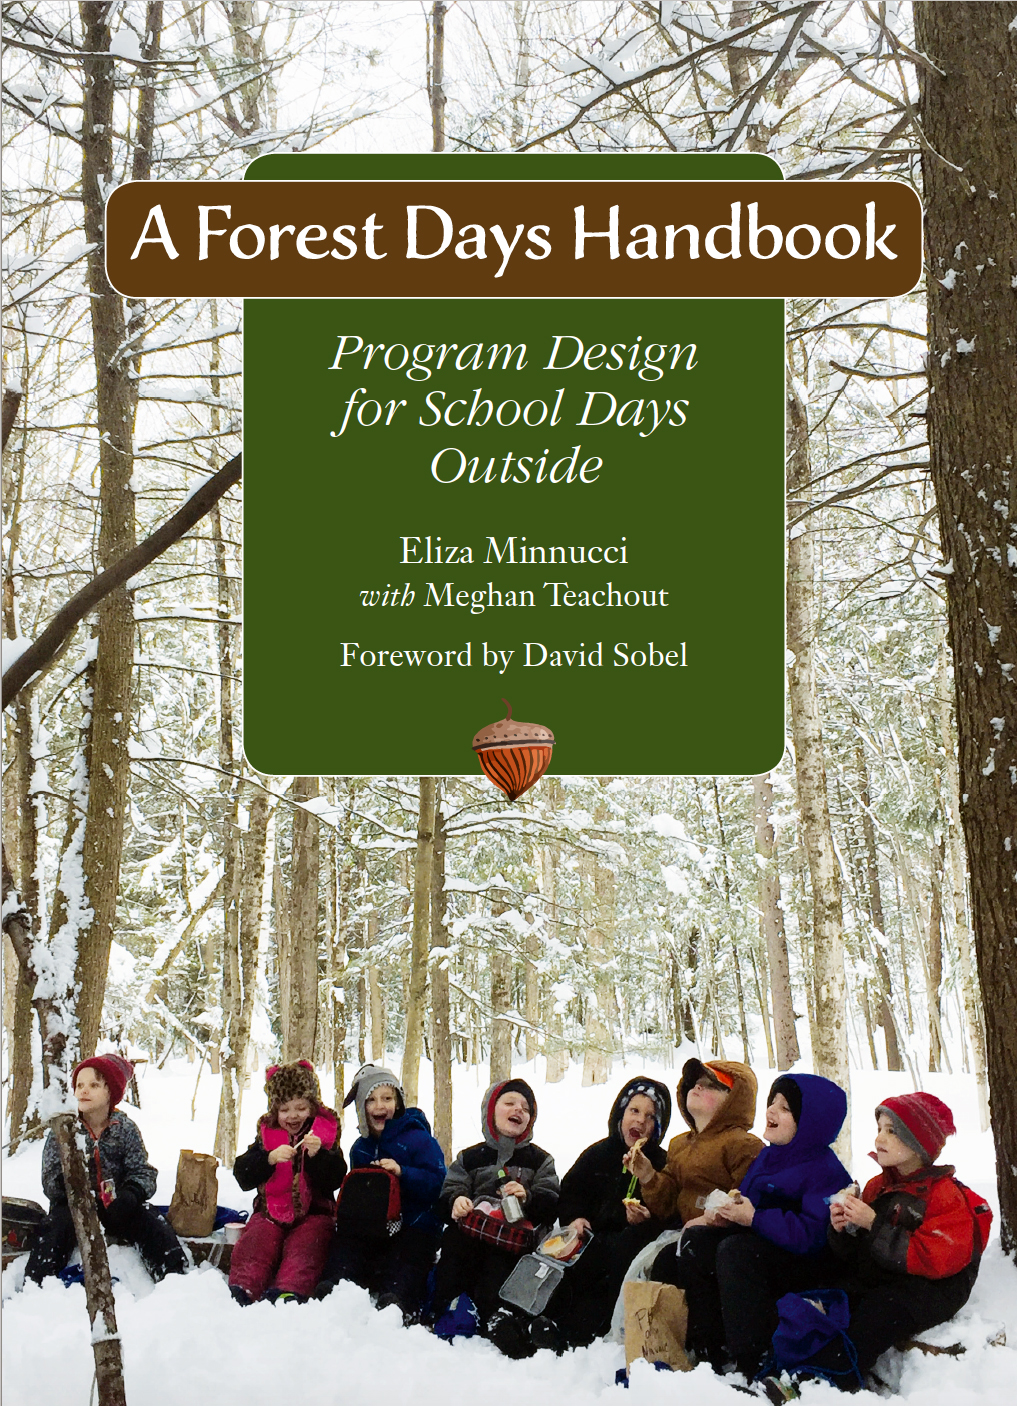 A Forest Days Handbook: Program Design for School Days Outside